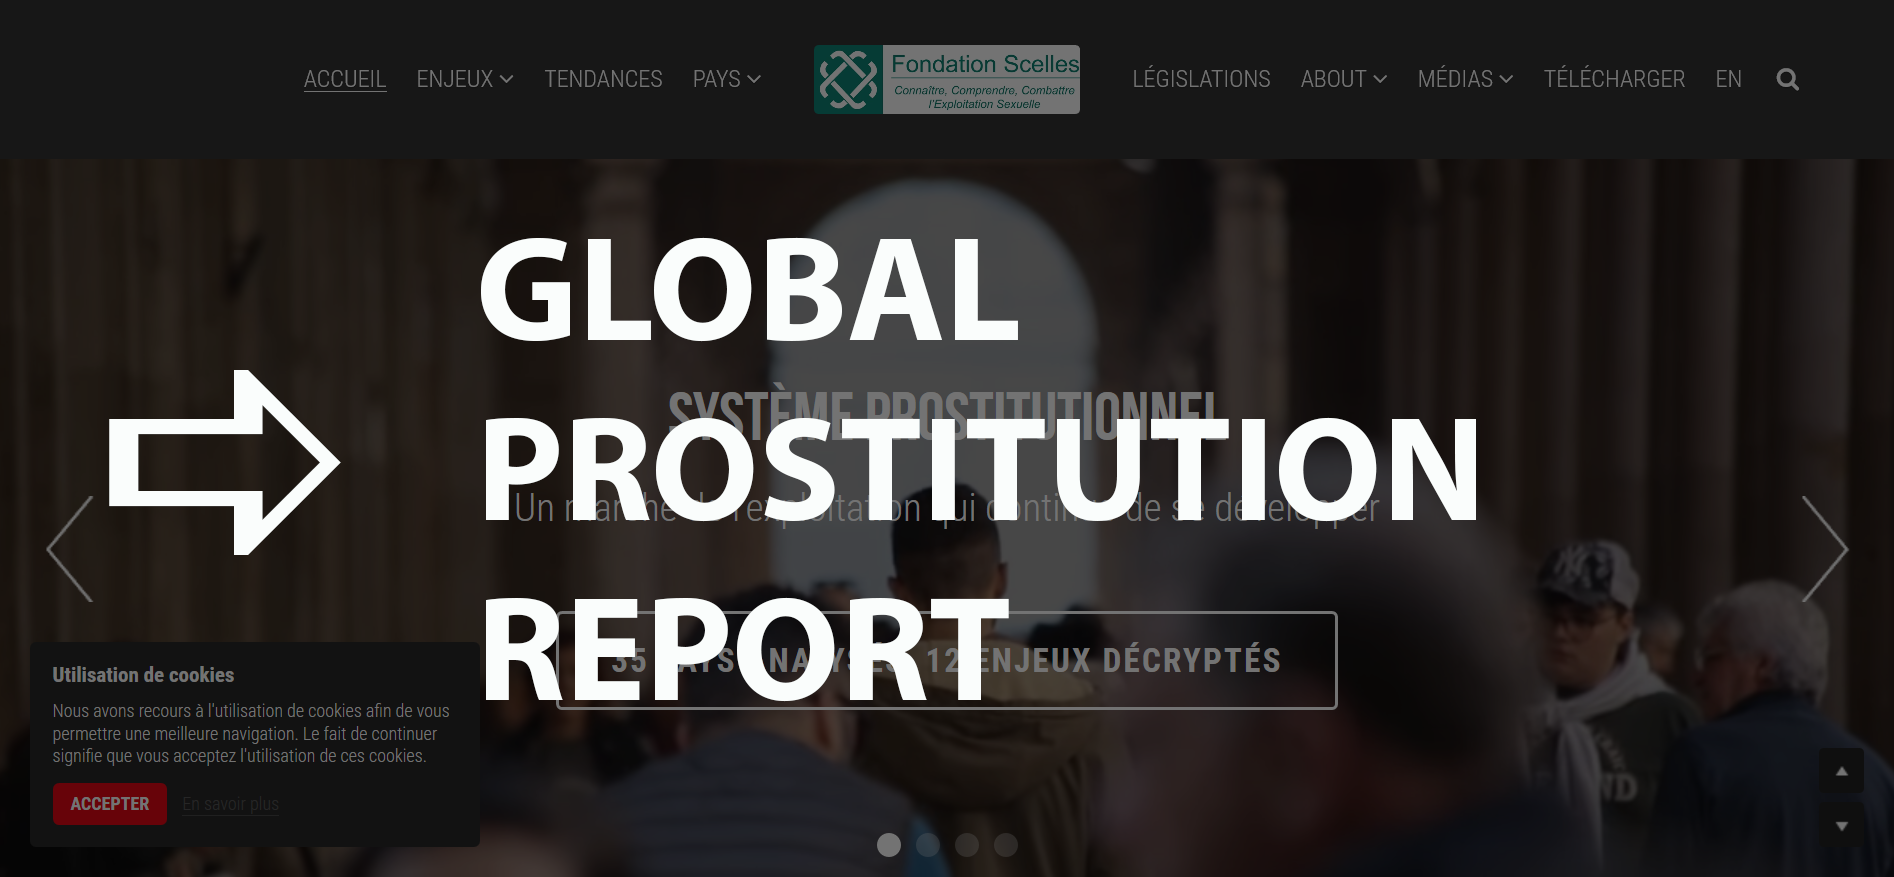 to the global prostitution report website